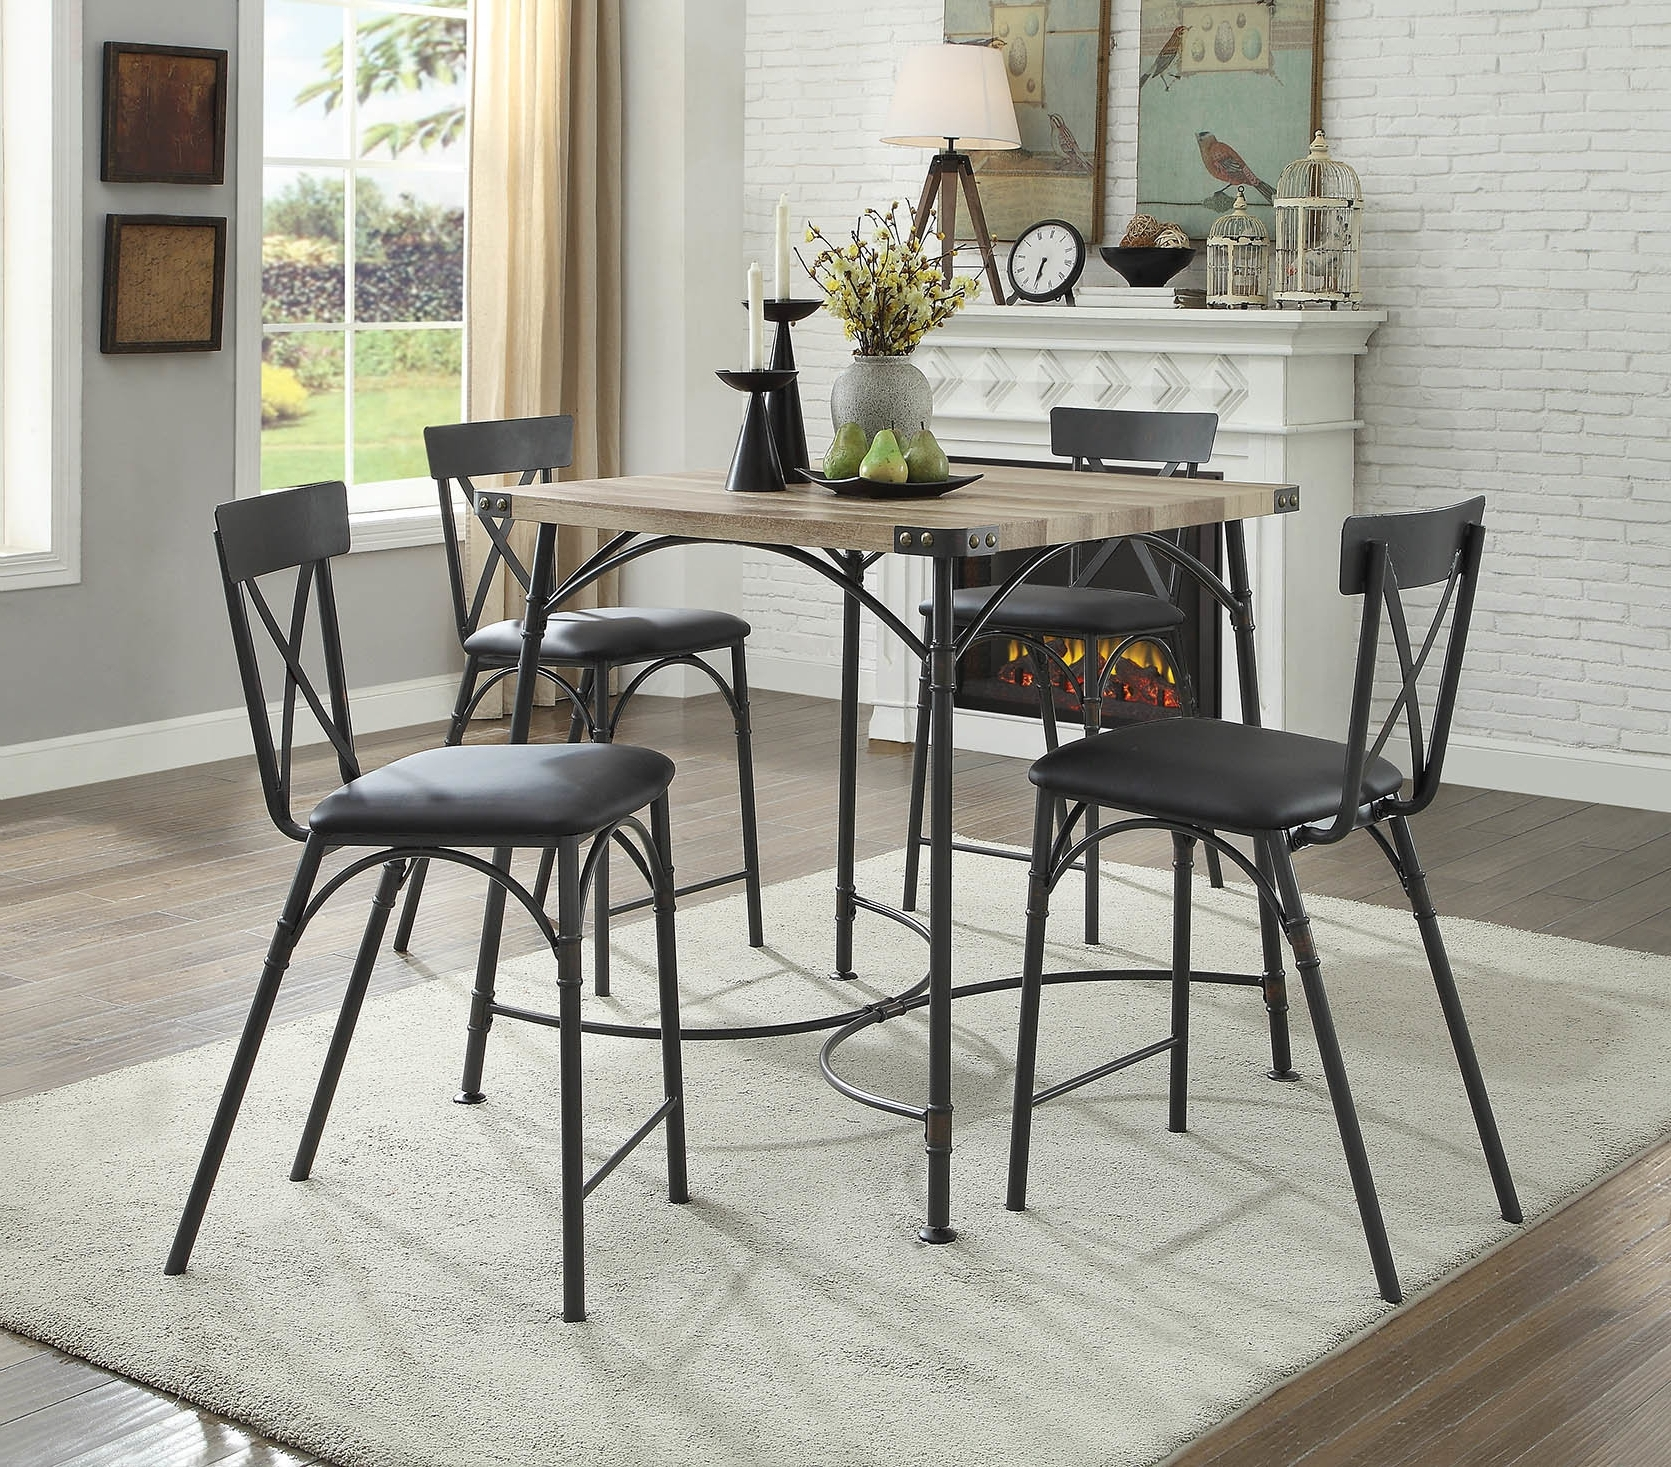 Wayfair With Regard To Caira Black 5 Piece Round Dining Sets With Upholstered Side Chairs (View 22 of 25)